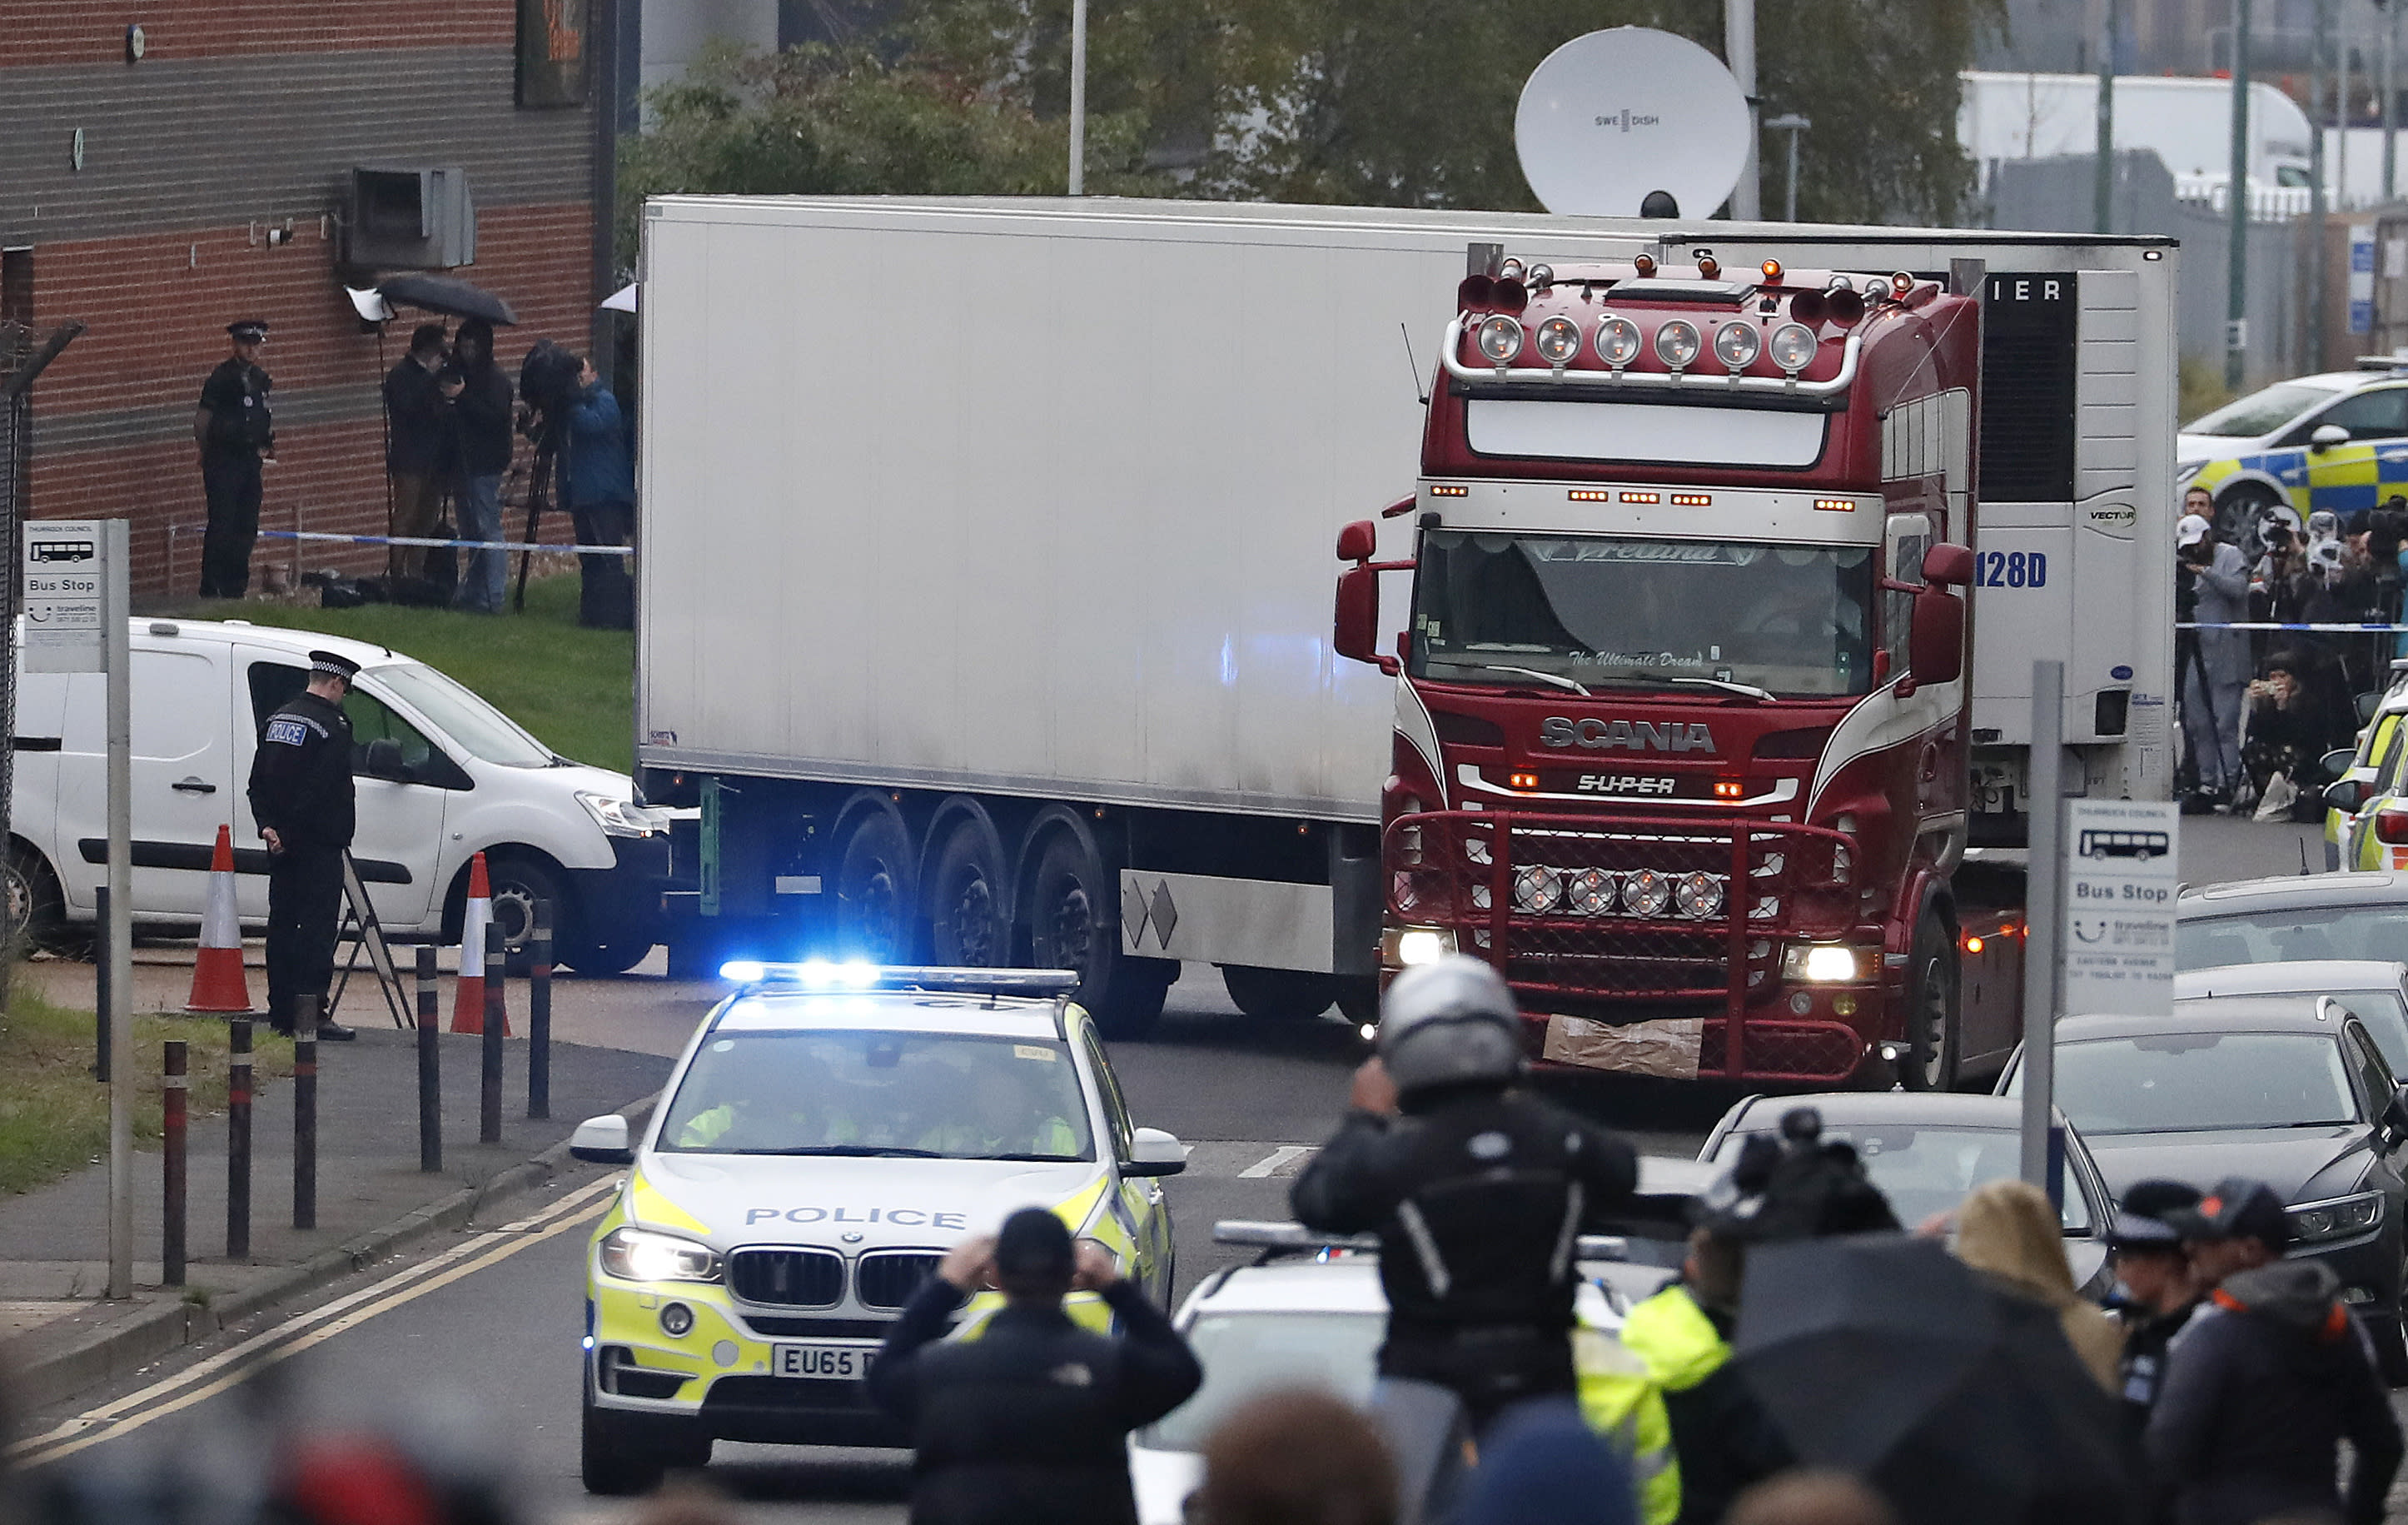 Lorry driver accused of 39 migrant deaths admit illegal immigration plot